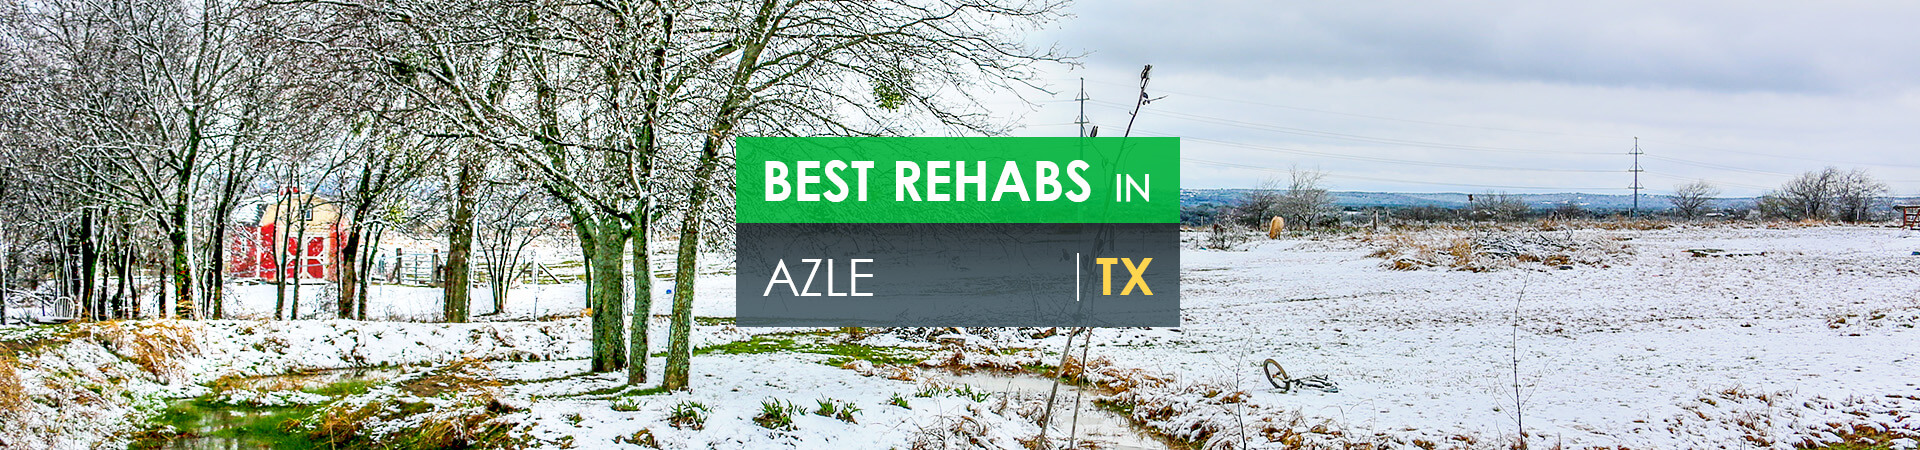 Best rehabs in Azle, TX